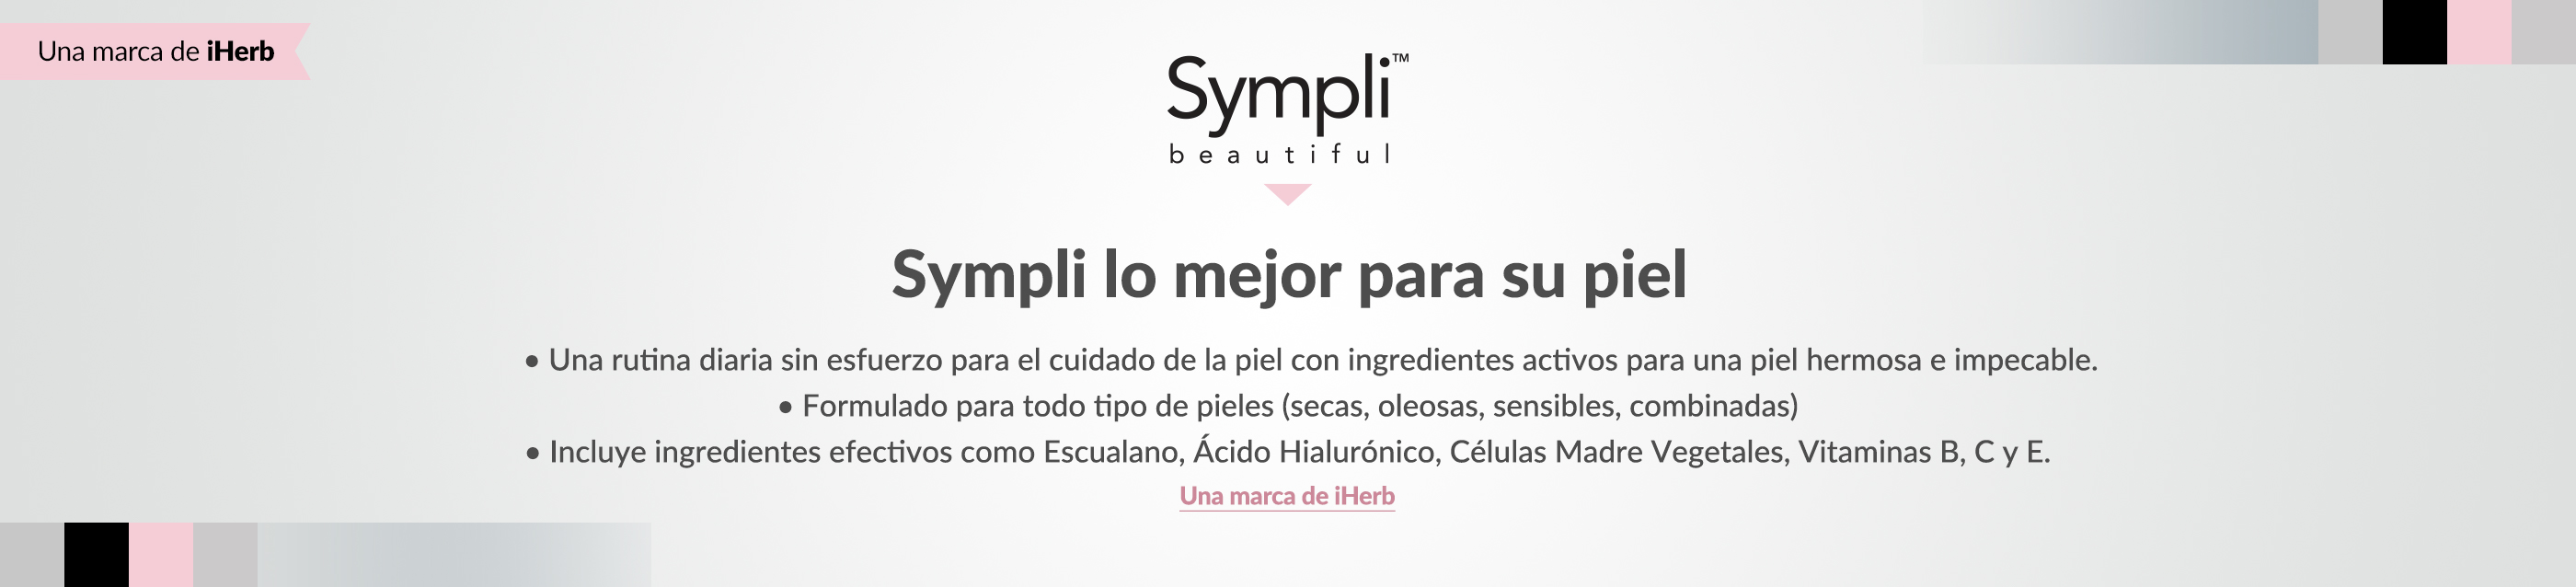 Sympli Beautiful